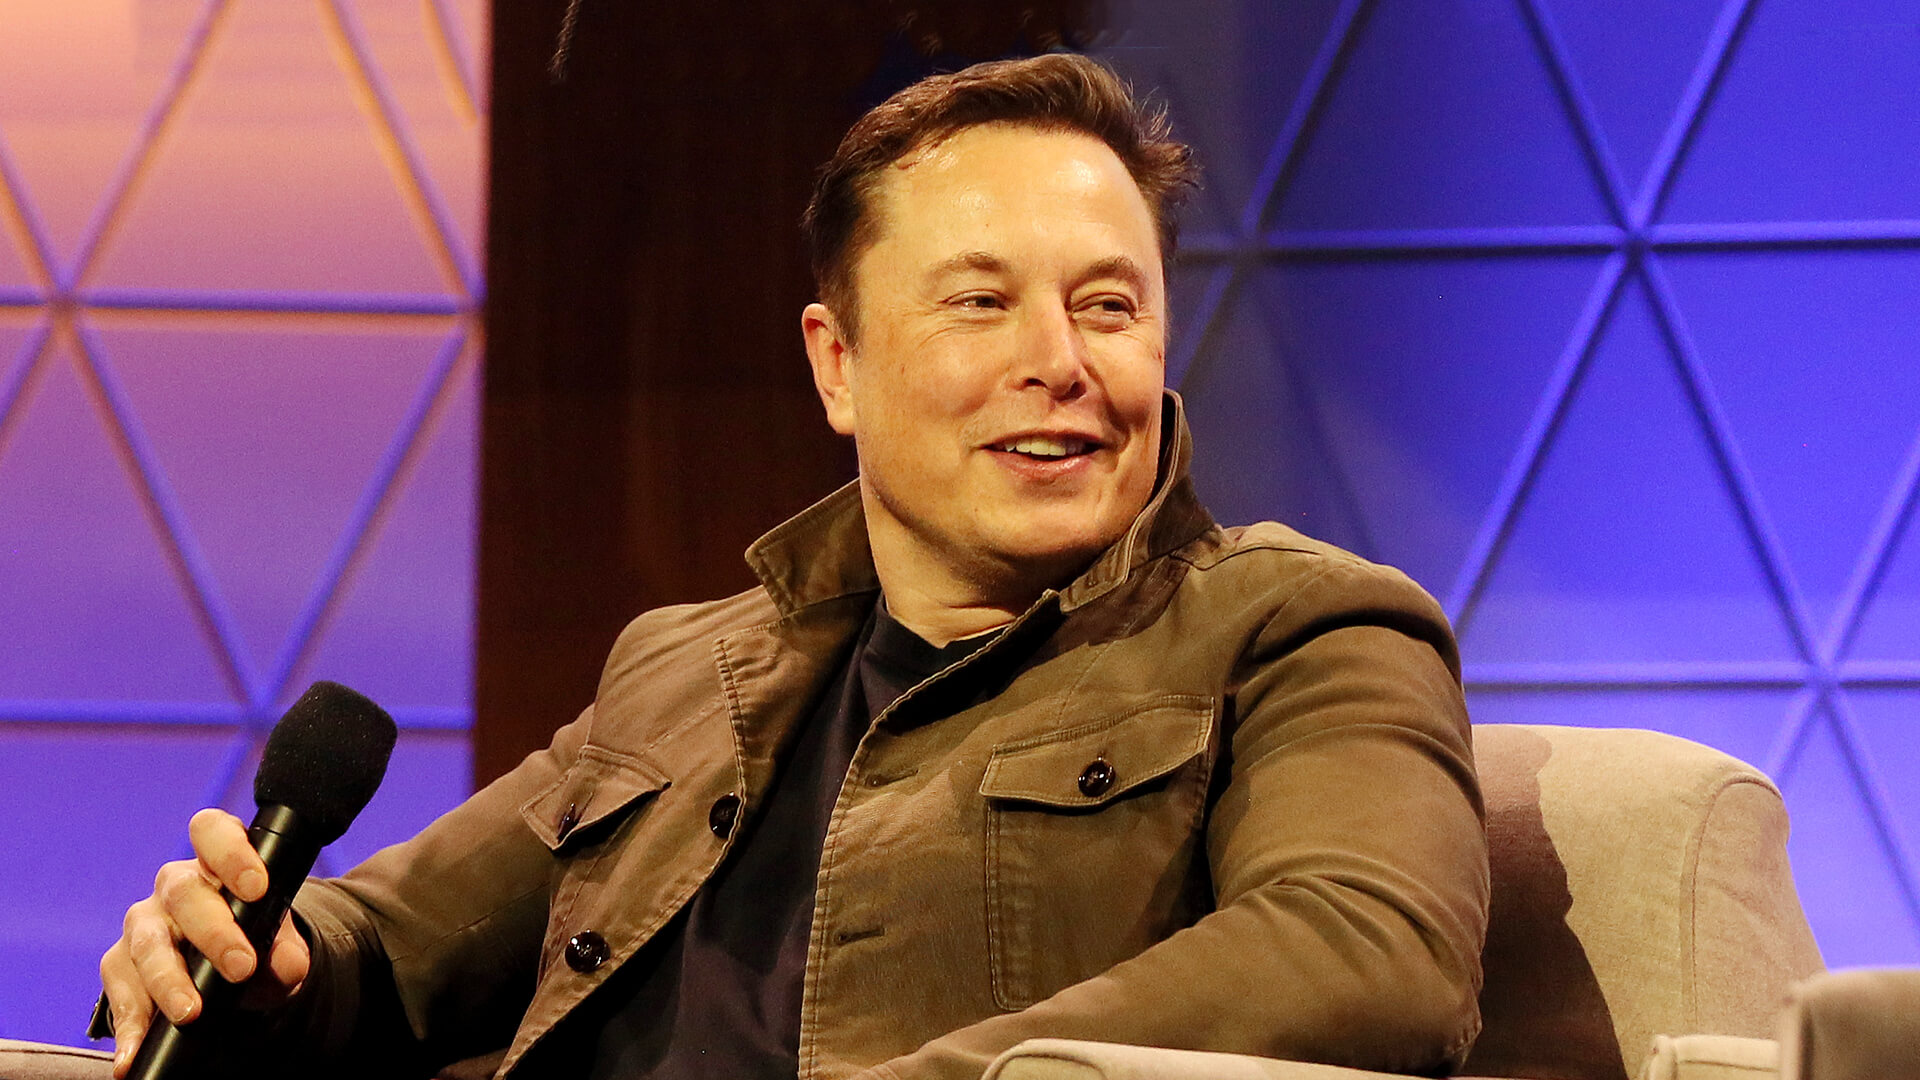 This Ultra-Rich Boys' Club Just Got Its 5th Member – Elon Musk